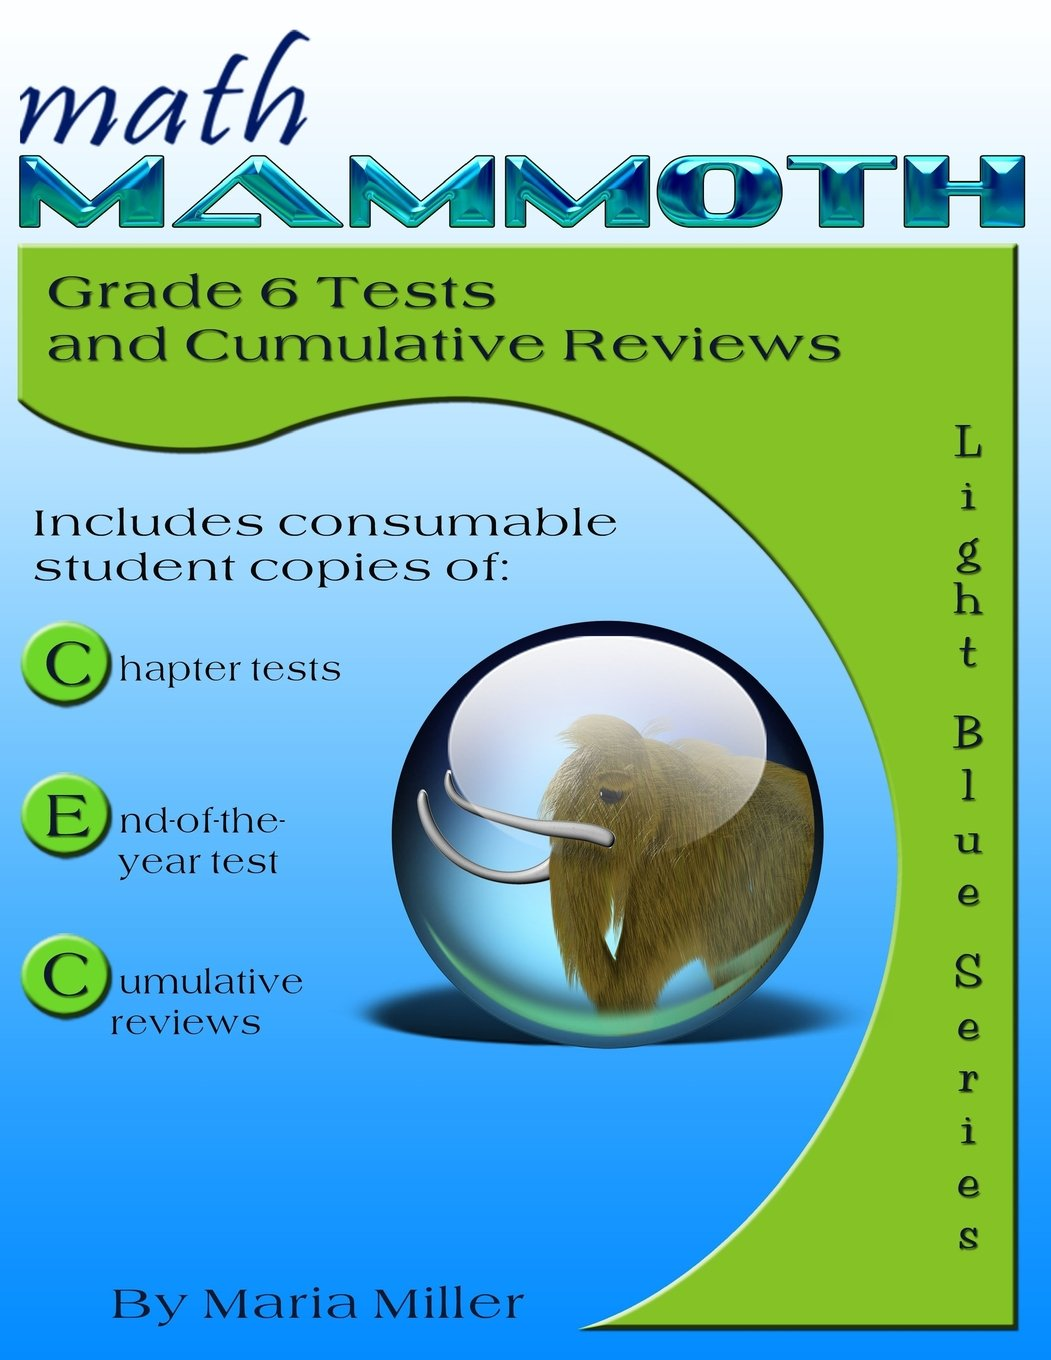 Math Mammoth Grade 6 Tests and Cumulative Reviews: Maria Miller ...